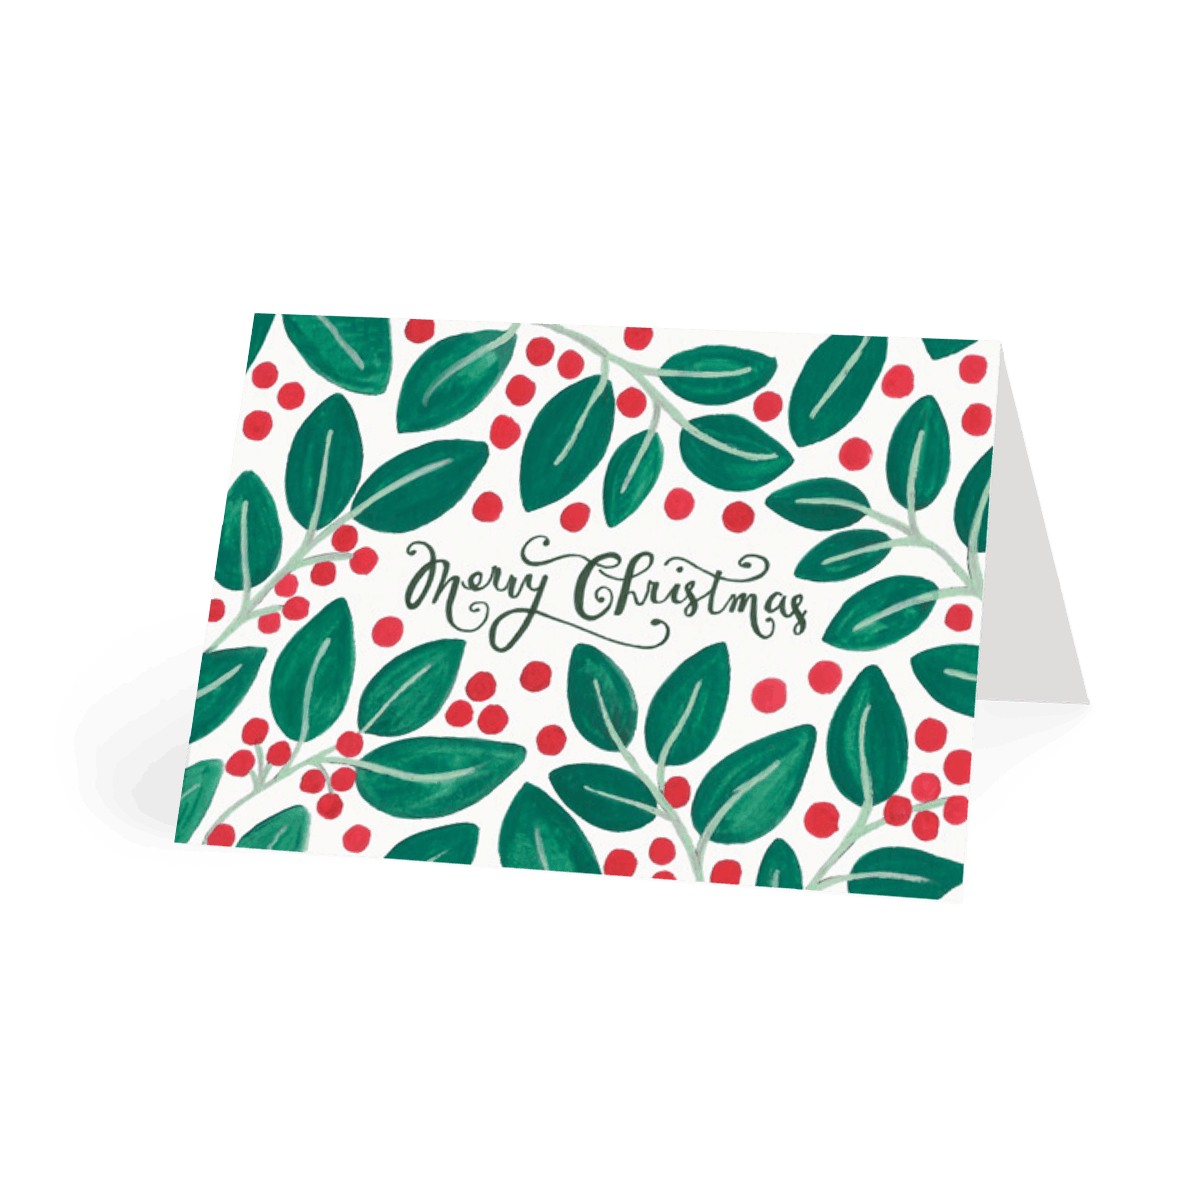 Https%3a%2f%2fwww.papier.com%2fproduct image%2f24923%2f14%2fchristmas berries leaves 6217 front 1537287082.png?ixlib=rb 1.1